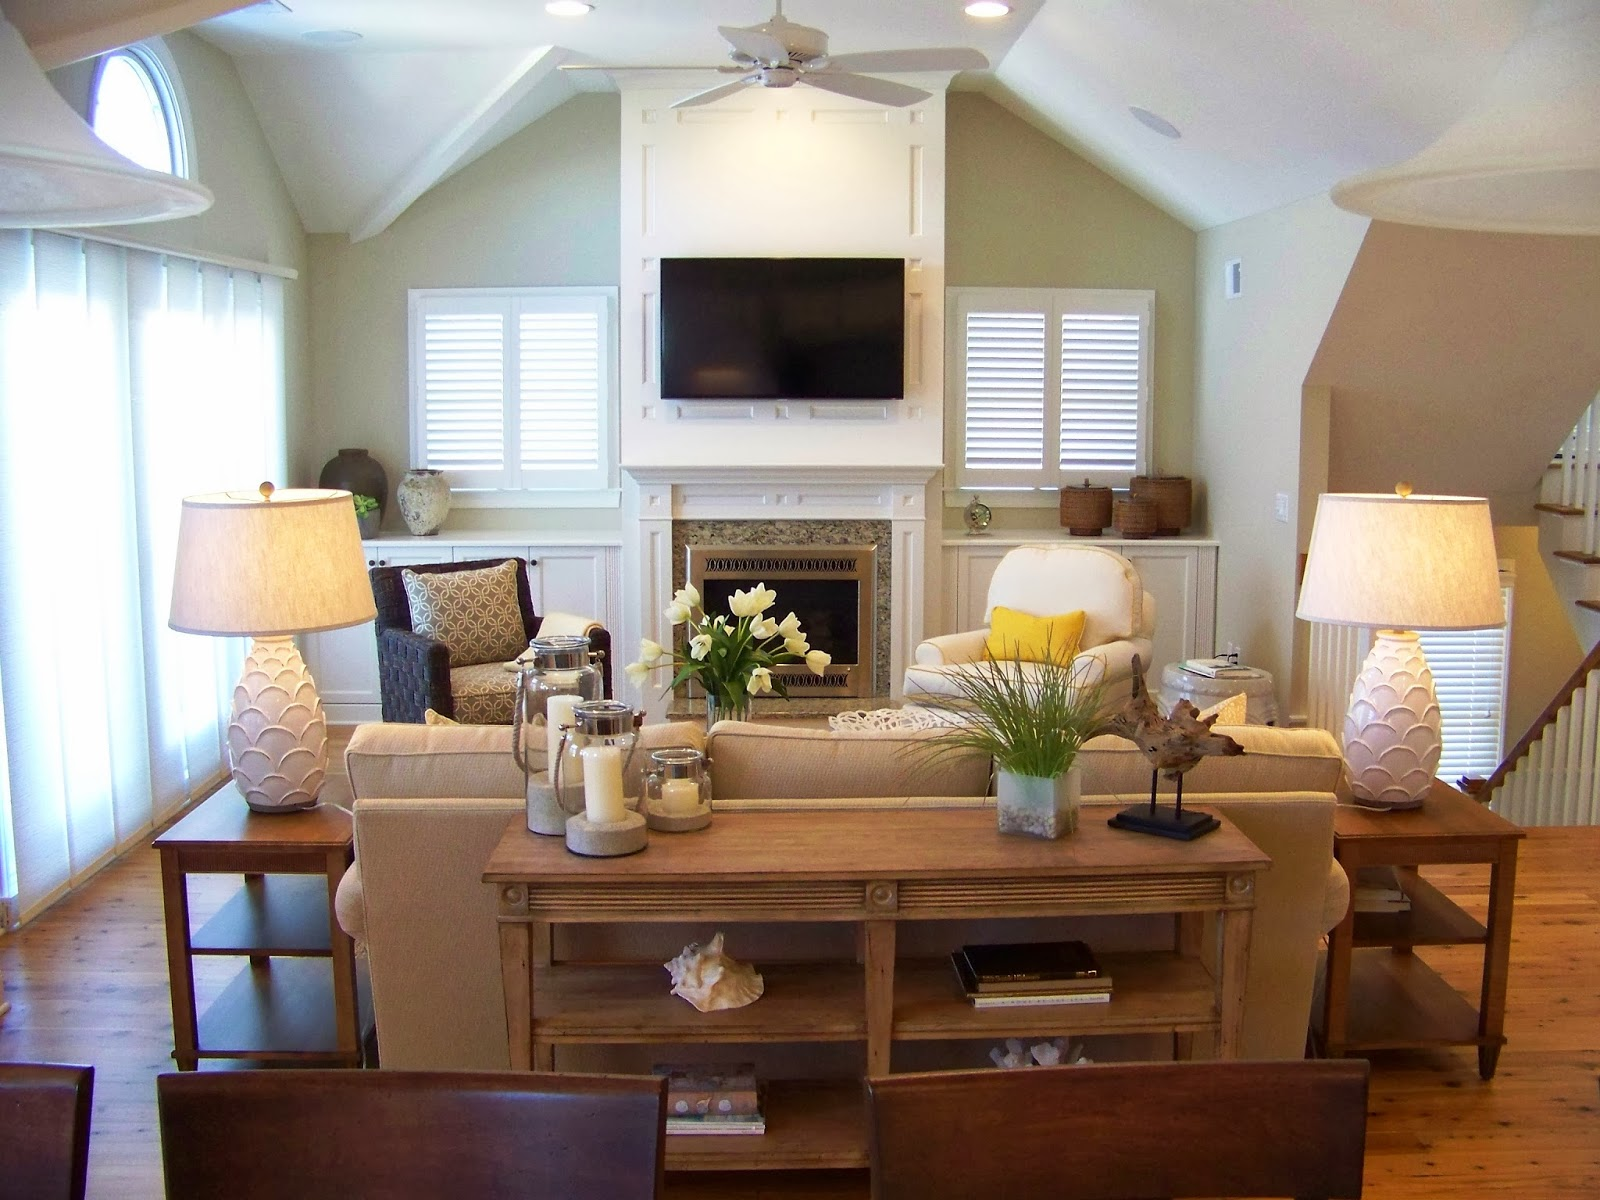 Color changes everything beach house - Decorate living room with fireplace ...